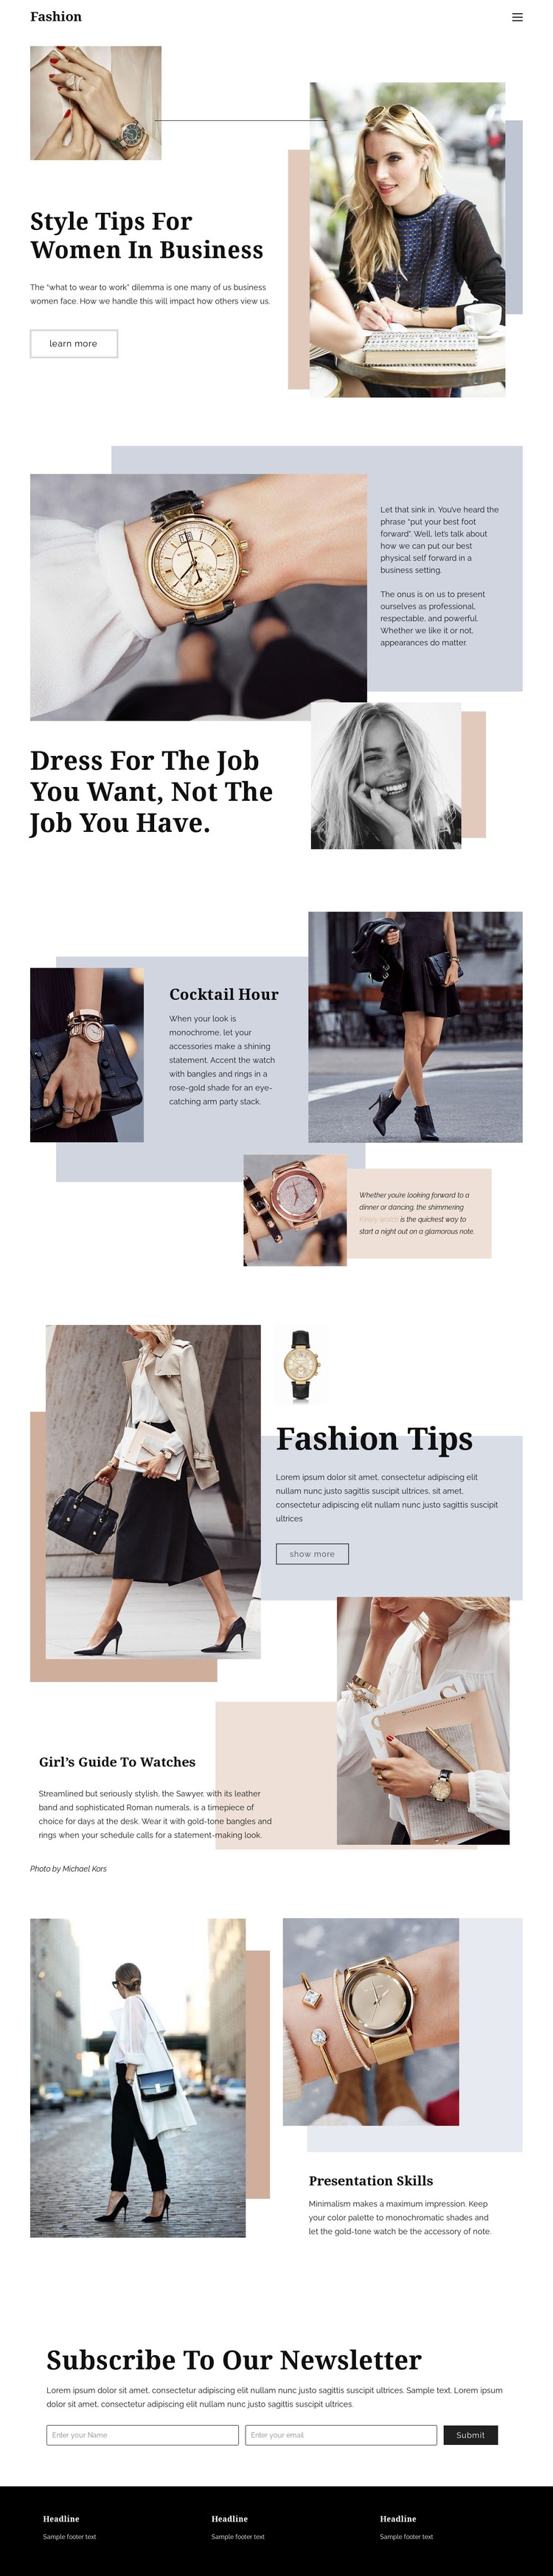 Fashion tips Static Site Generator